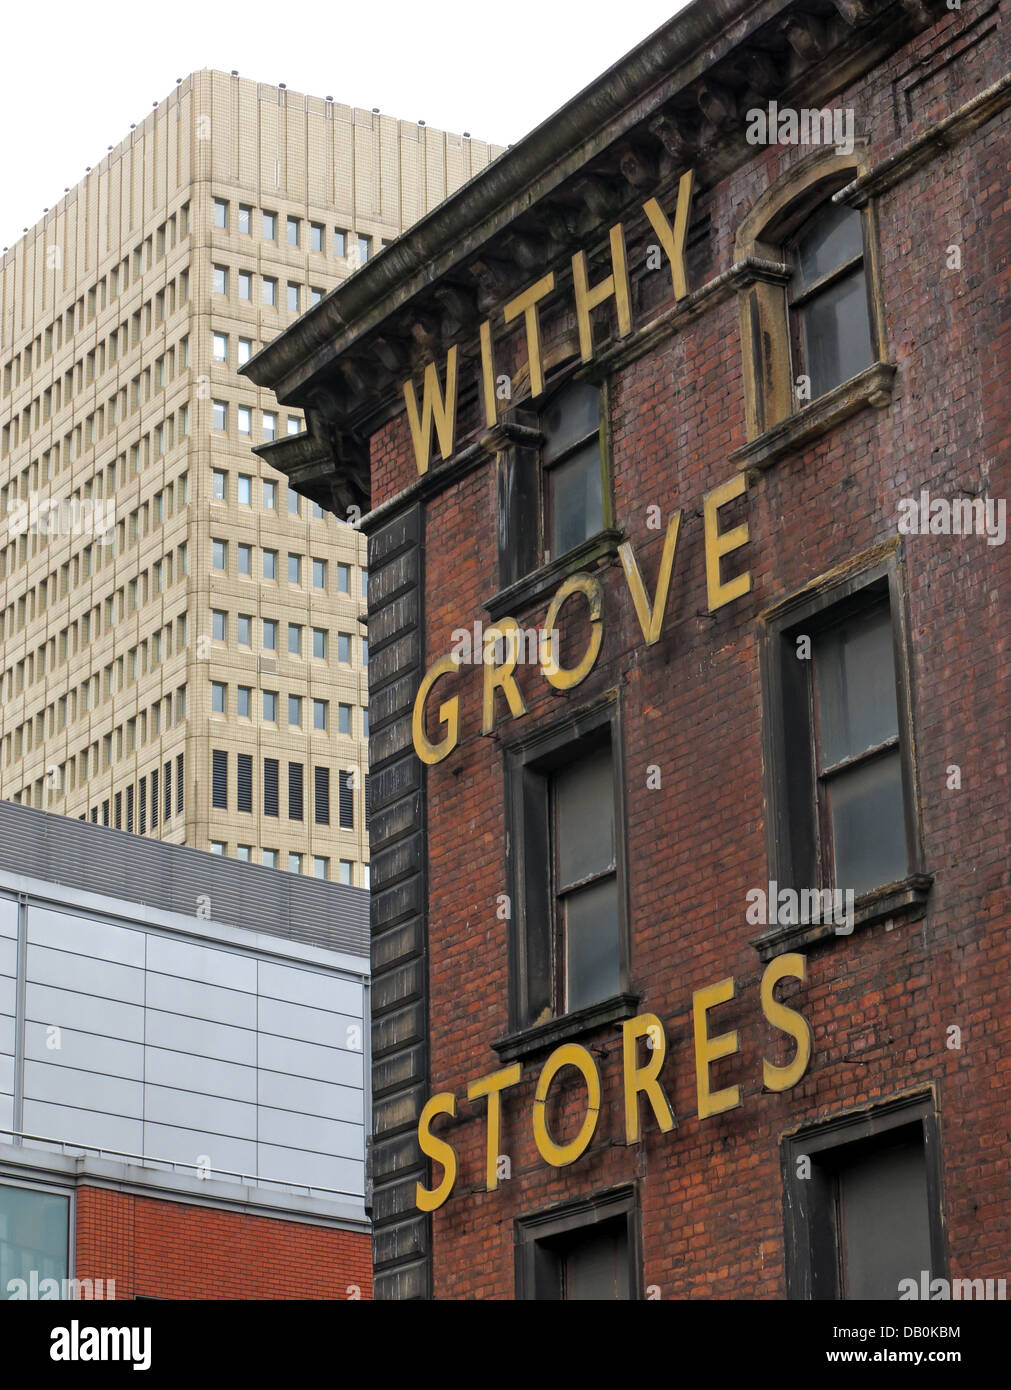 The old withy Grove Stores victorian building in Shudehill Manchester City Centre with the 1970s Arndale shopping Stock Photo